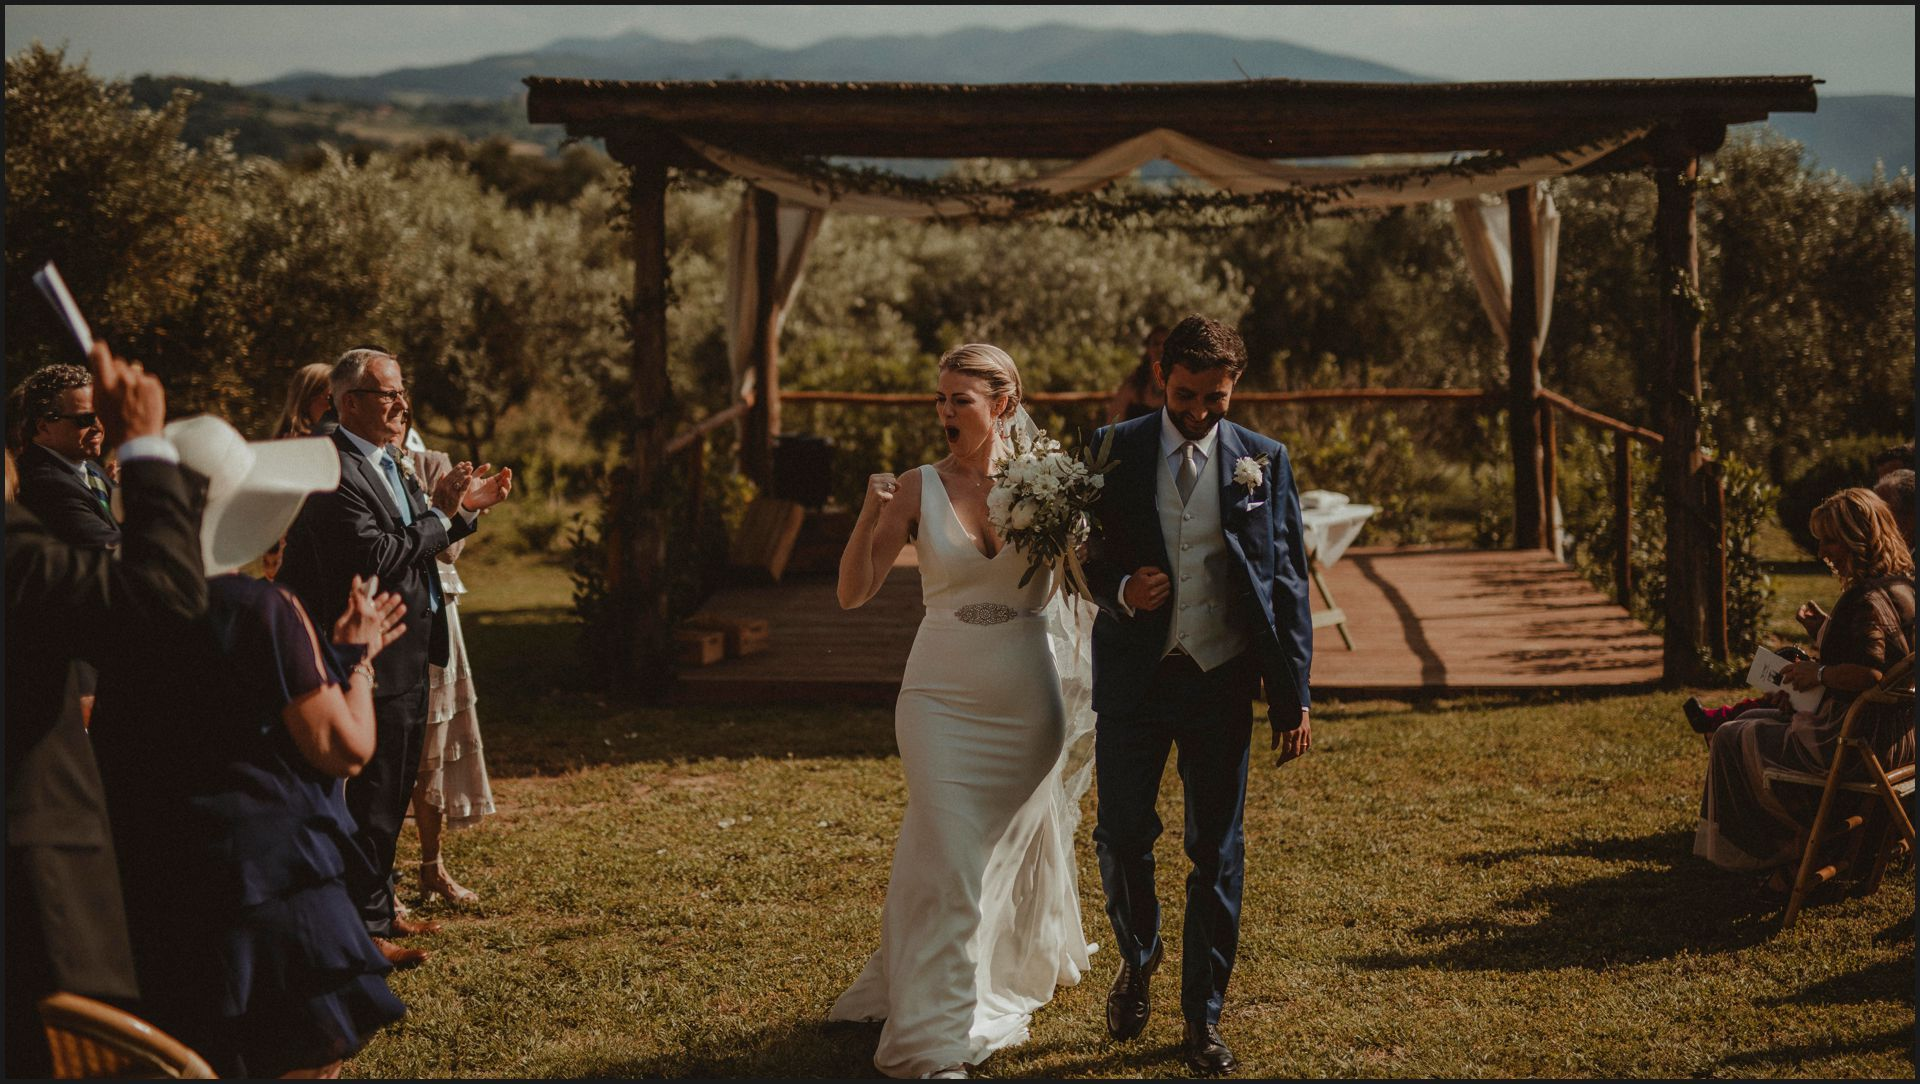 tenuta di canonica, umbria, wedding, ceremony, country, bride, groom, funny